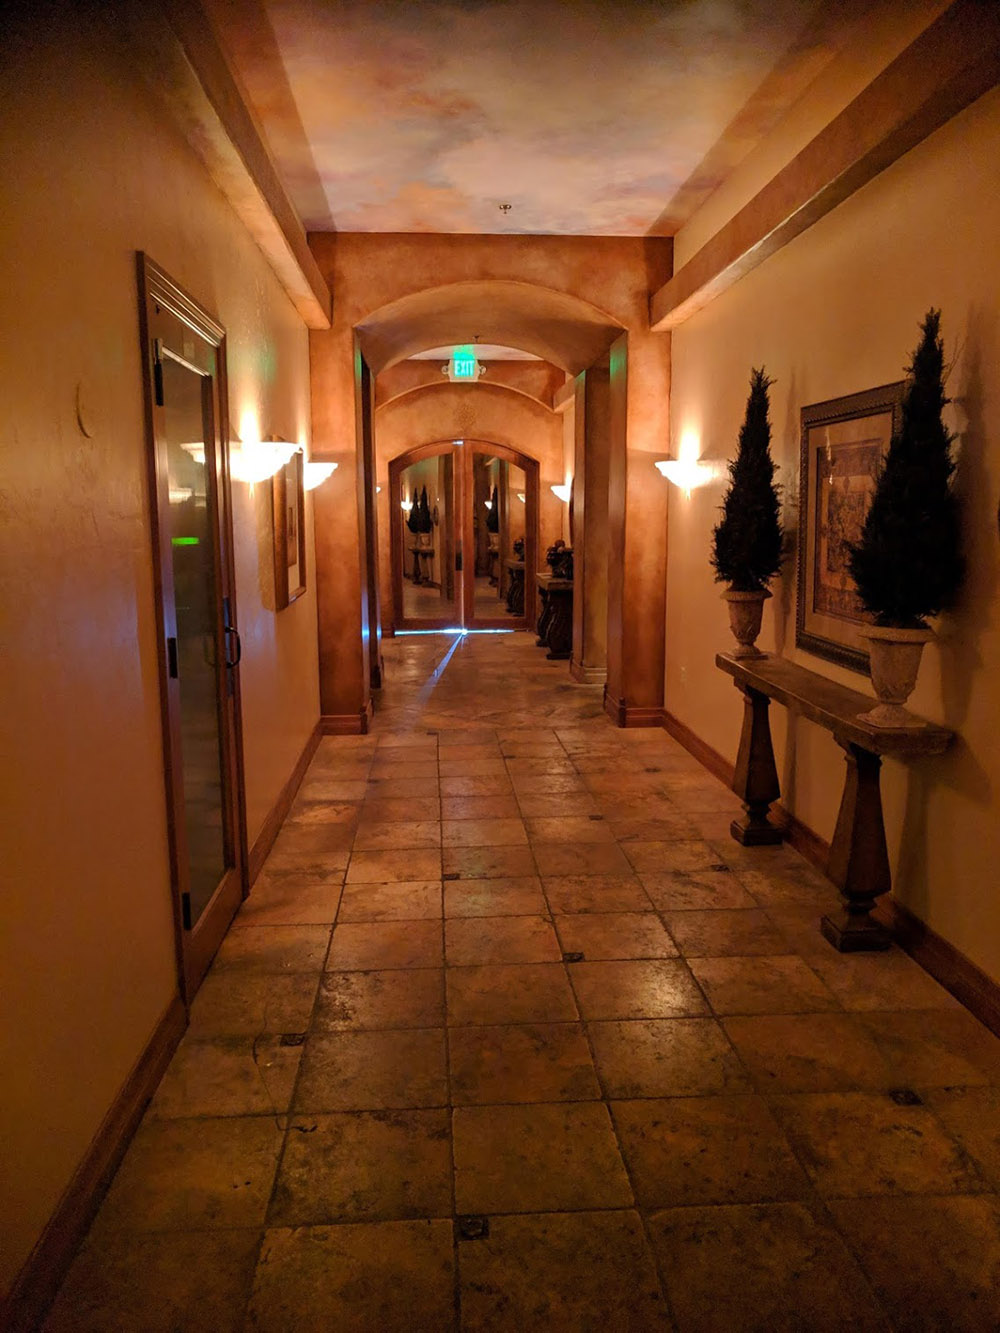 Sego Lily's hallways are open and grand.